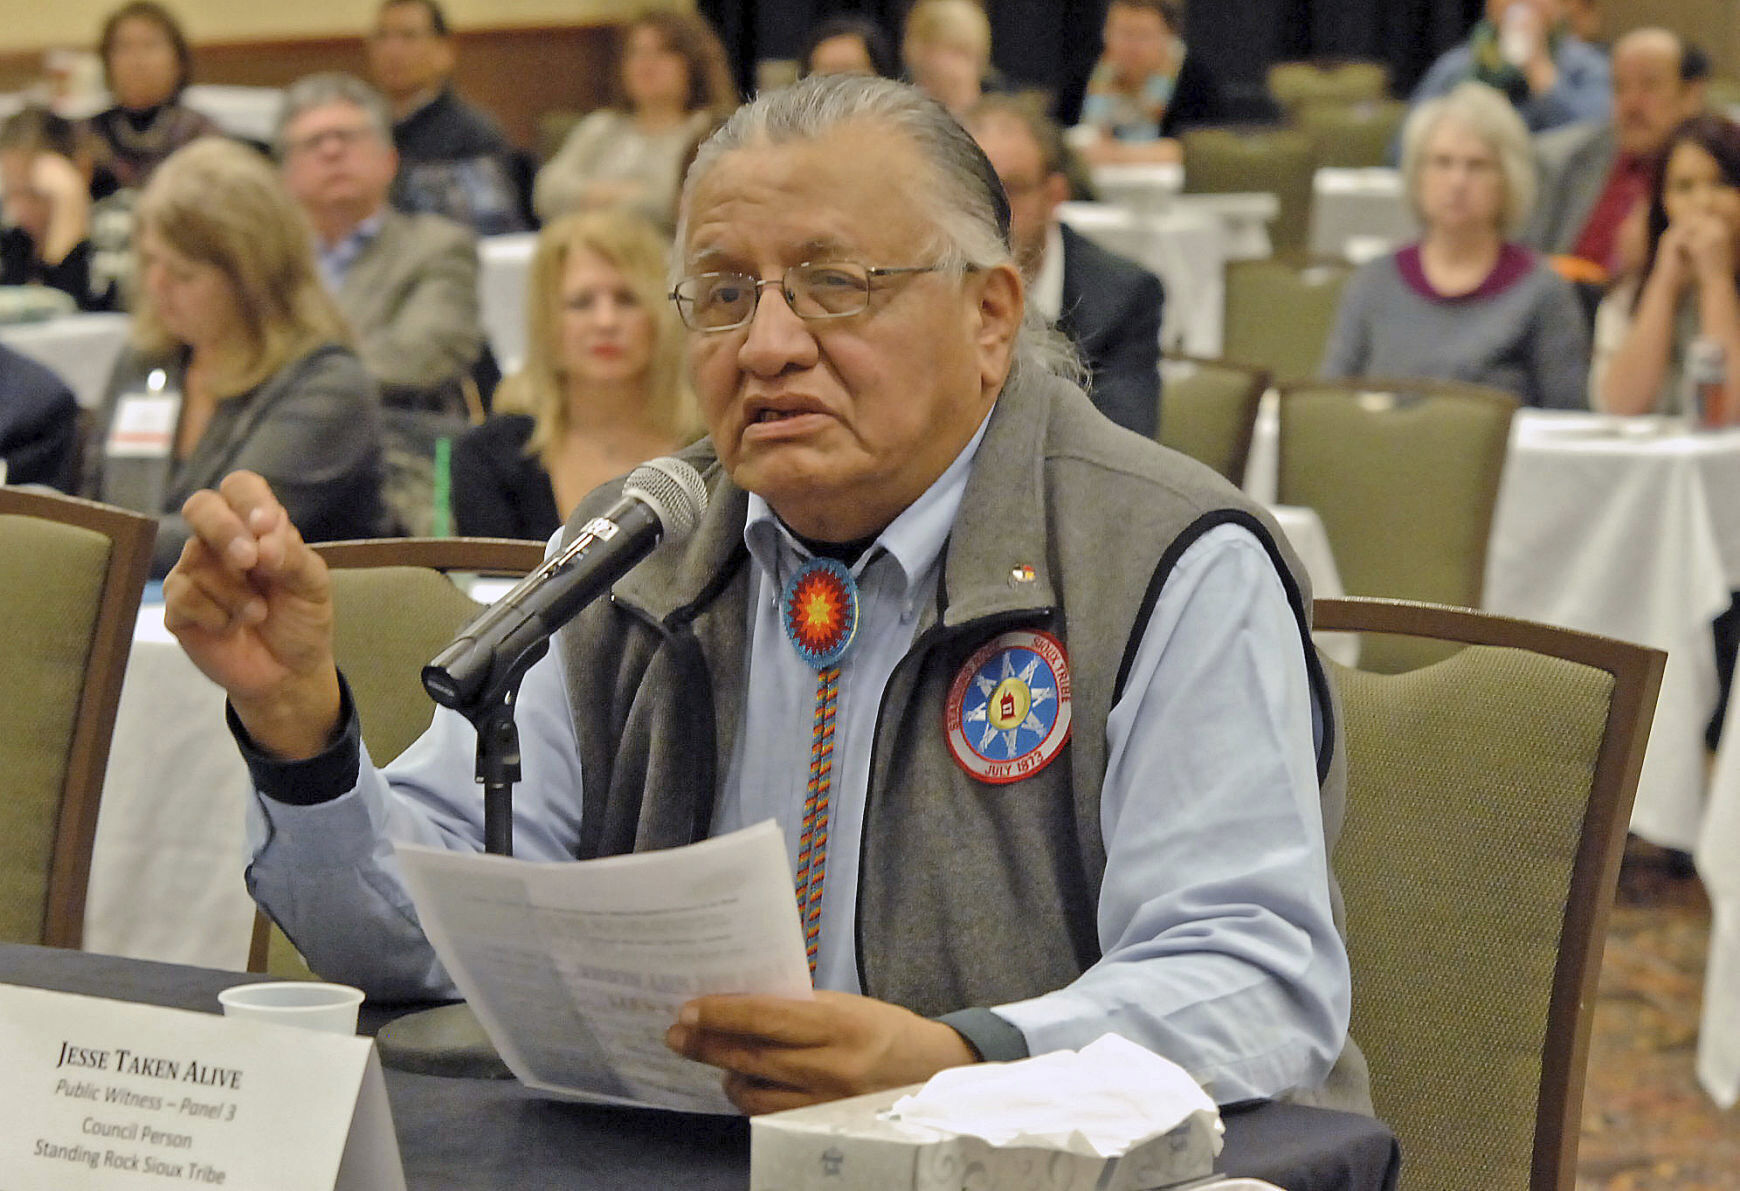 This 2013 file photo shows Jesse Taken Alive of the Standing Rock Sioux Tribe testifying in Bismarck, N.D. Family members say the former chairman of the Standing Rock Sioux Tribe died in December after contracting COVID-19, not long after his wife passed away from the coronavirus. He taught Lakota culture and language at a school in his hometown of McLaughlin, South Dakota.